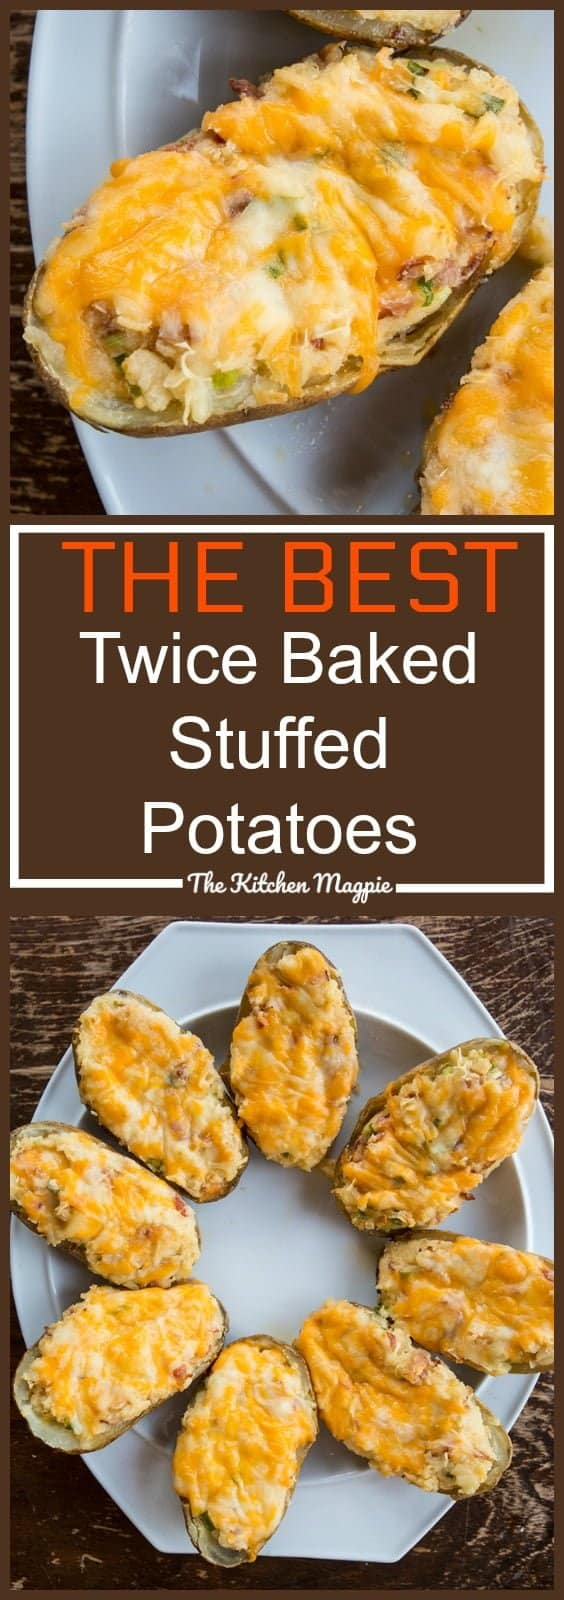 The Absolute Best Ever Twice Baked Stuffed Potatoes from @kitchenmagpie